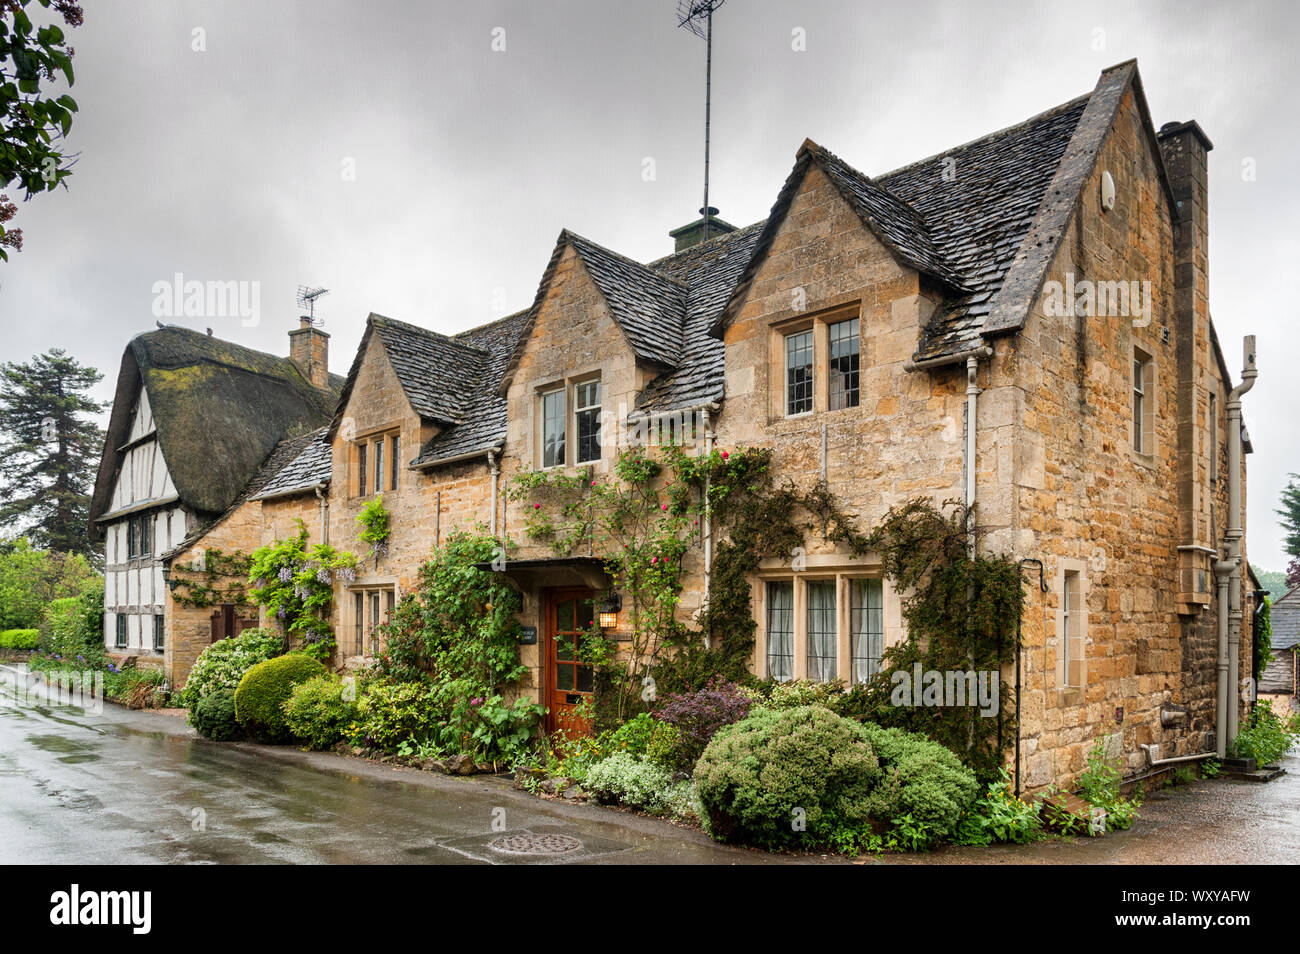 Stanton is a village in the Cotswolds district of Gloucestershire and is built completely of Cotswold stone, a honey-coloured Jurassic limestone Stock Photo